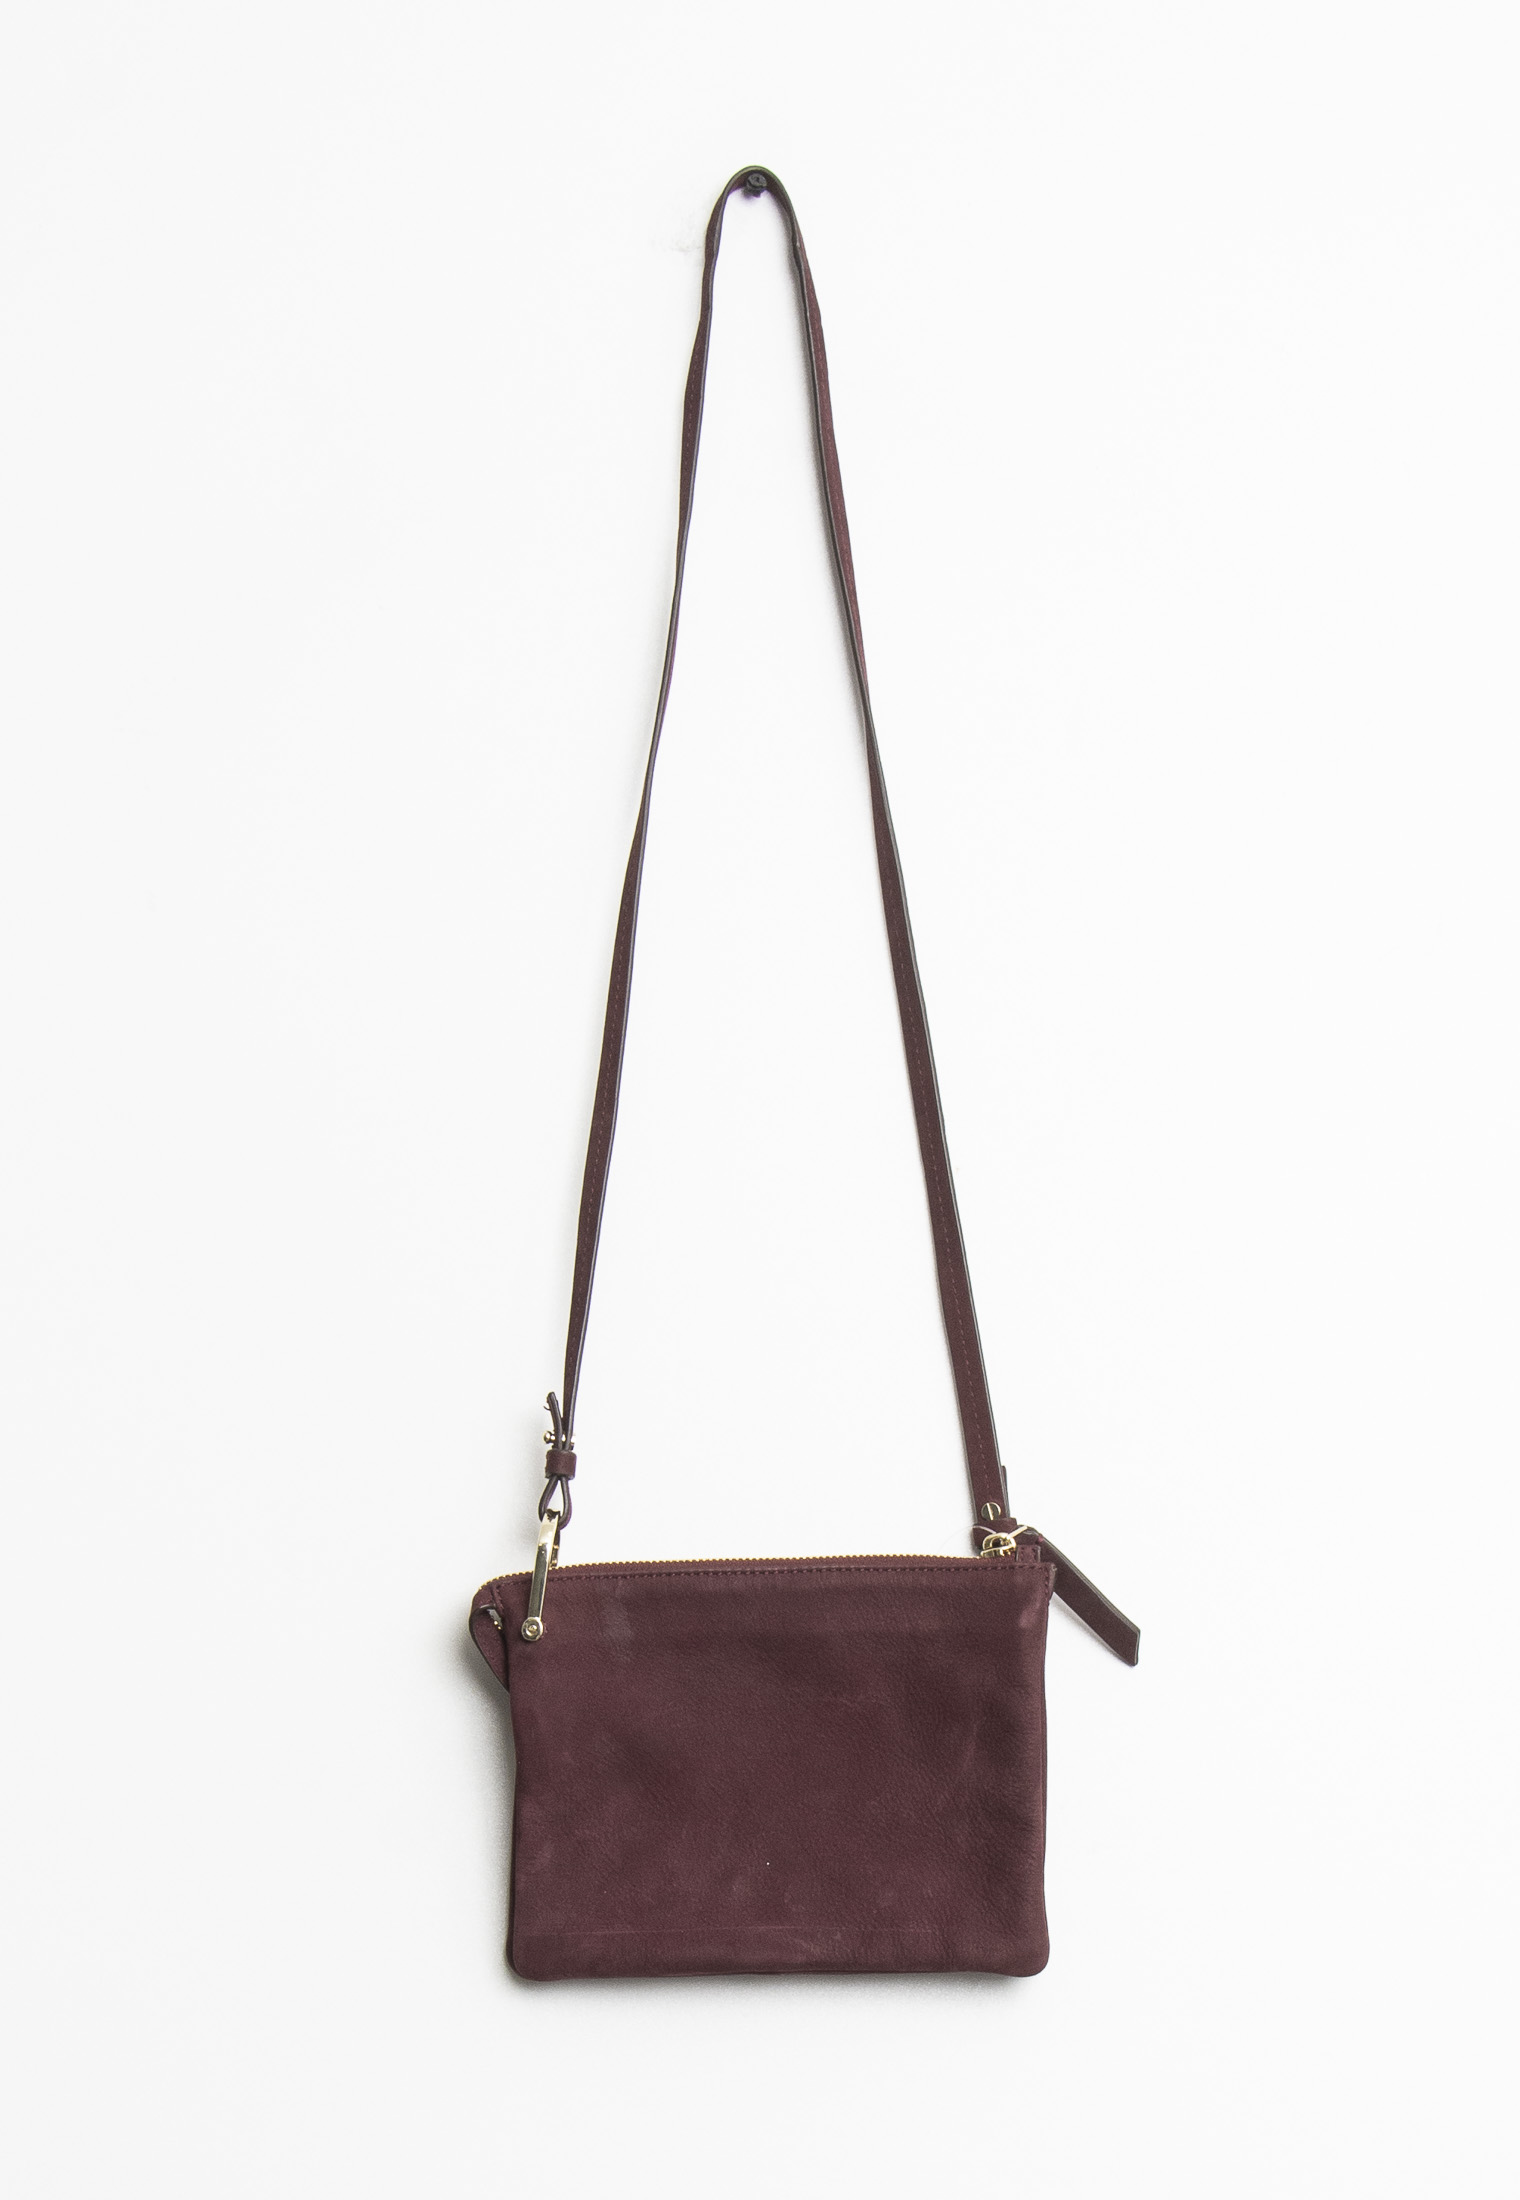 & other stories Tasche Lila Gr.One Size